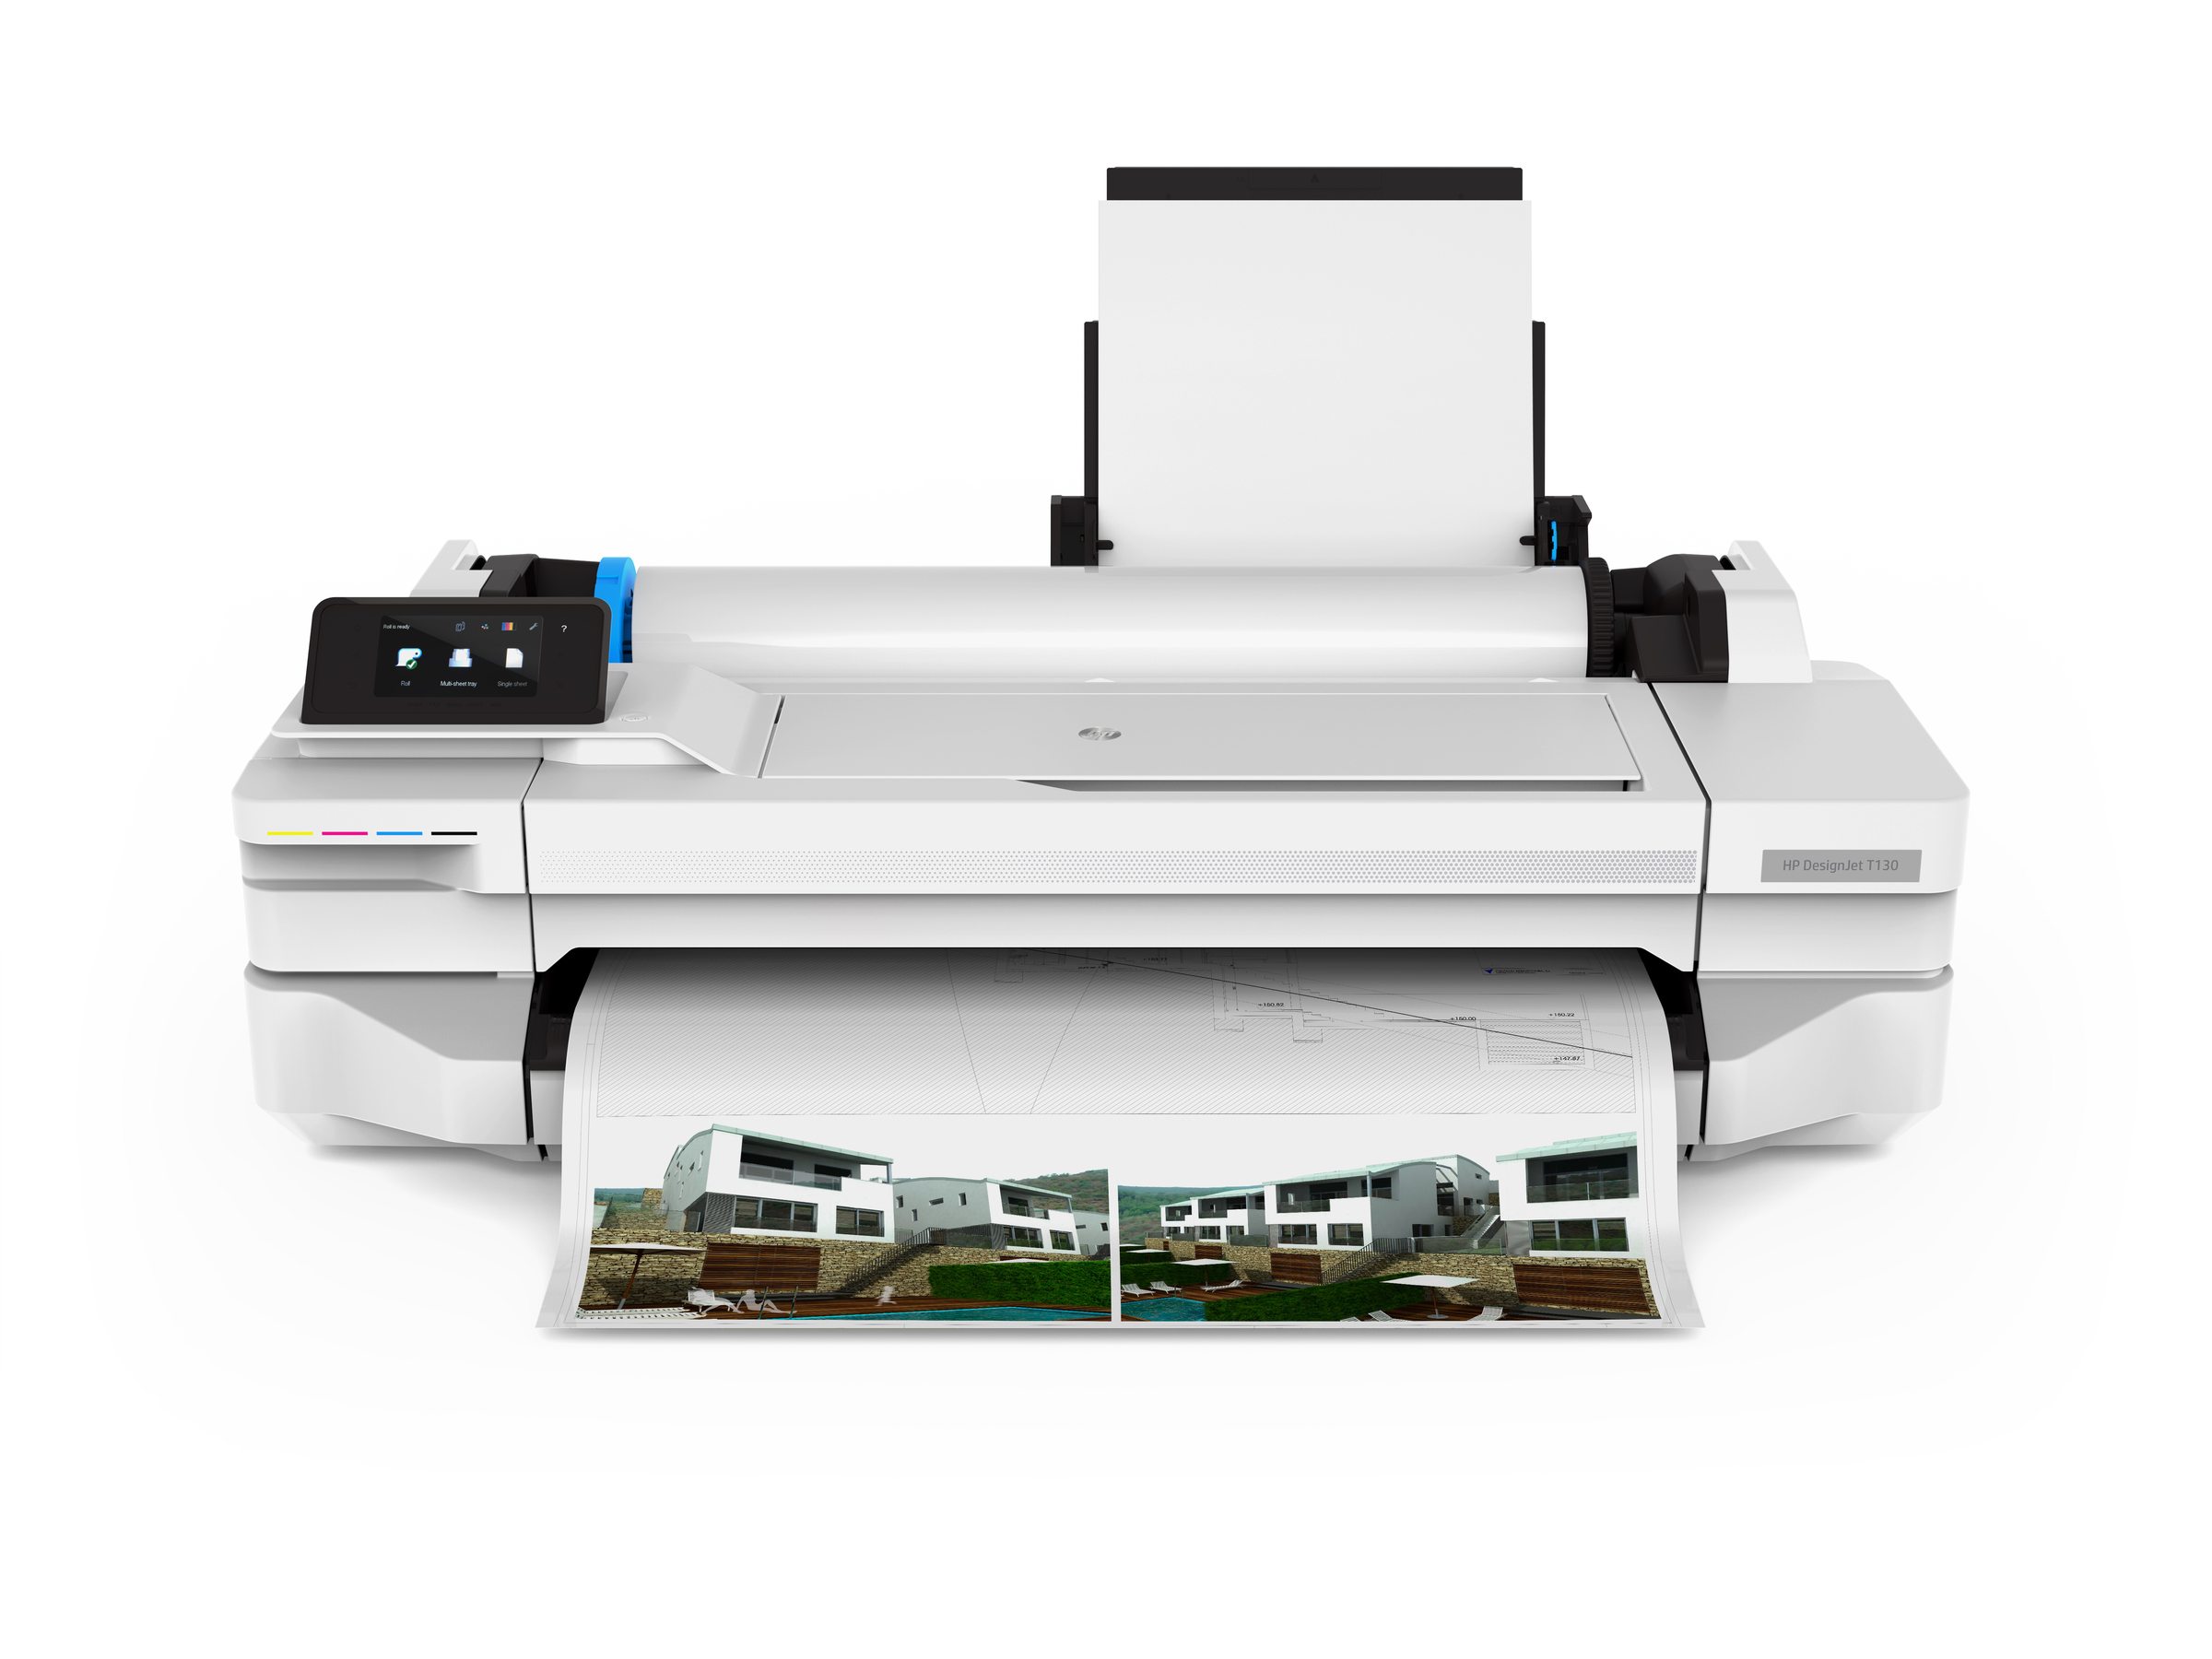 HP DesignJet T100-125-130 Printer series - DS image.jpg